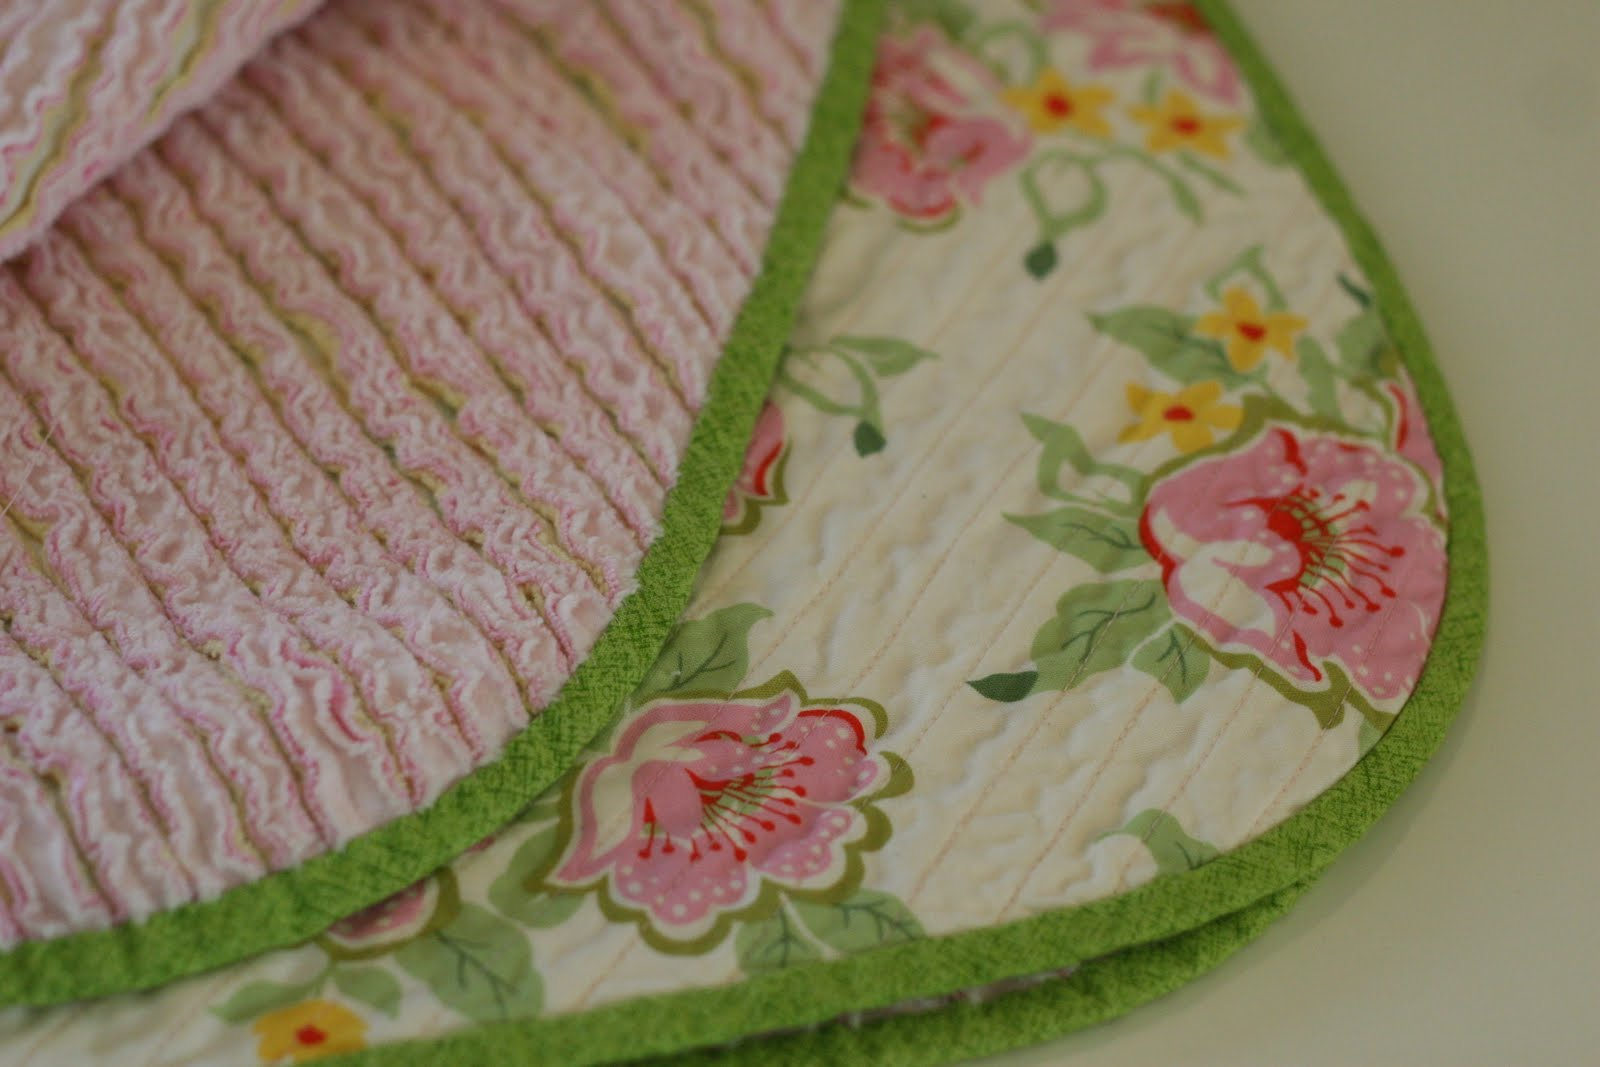 chenille blanket in double surface which are floral and solid pink for charming blanket ideas